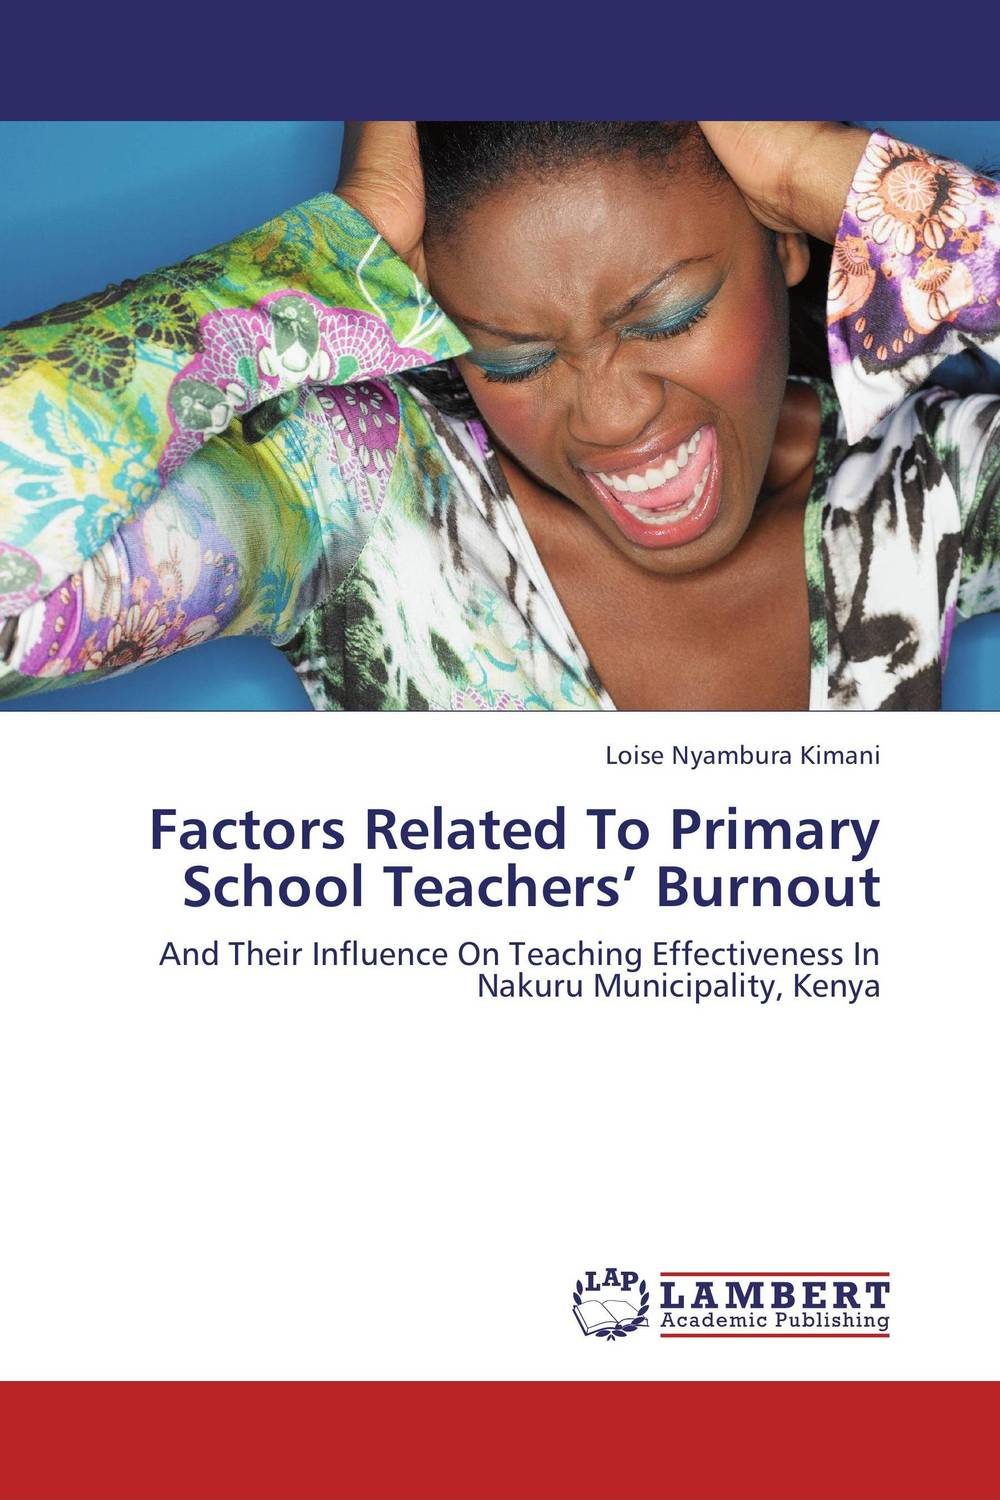 Factors Related To Primary School Teachers' Burnout somatic hybridization as a primary cause of malignization